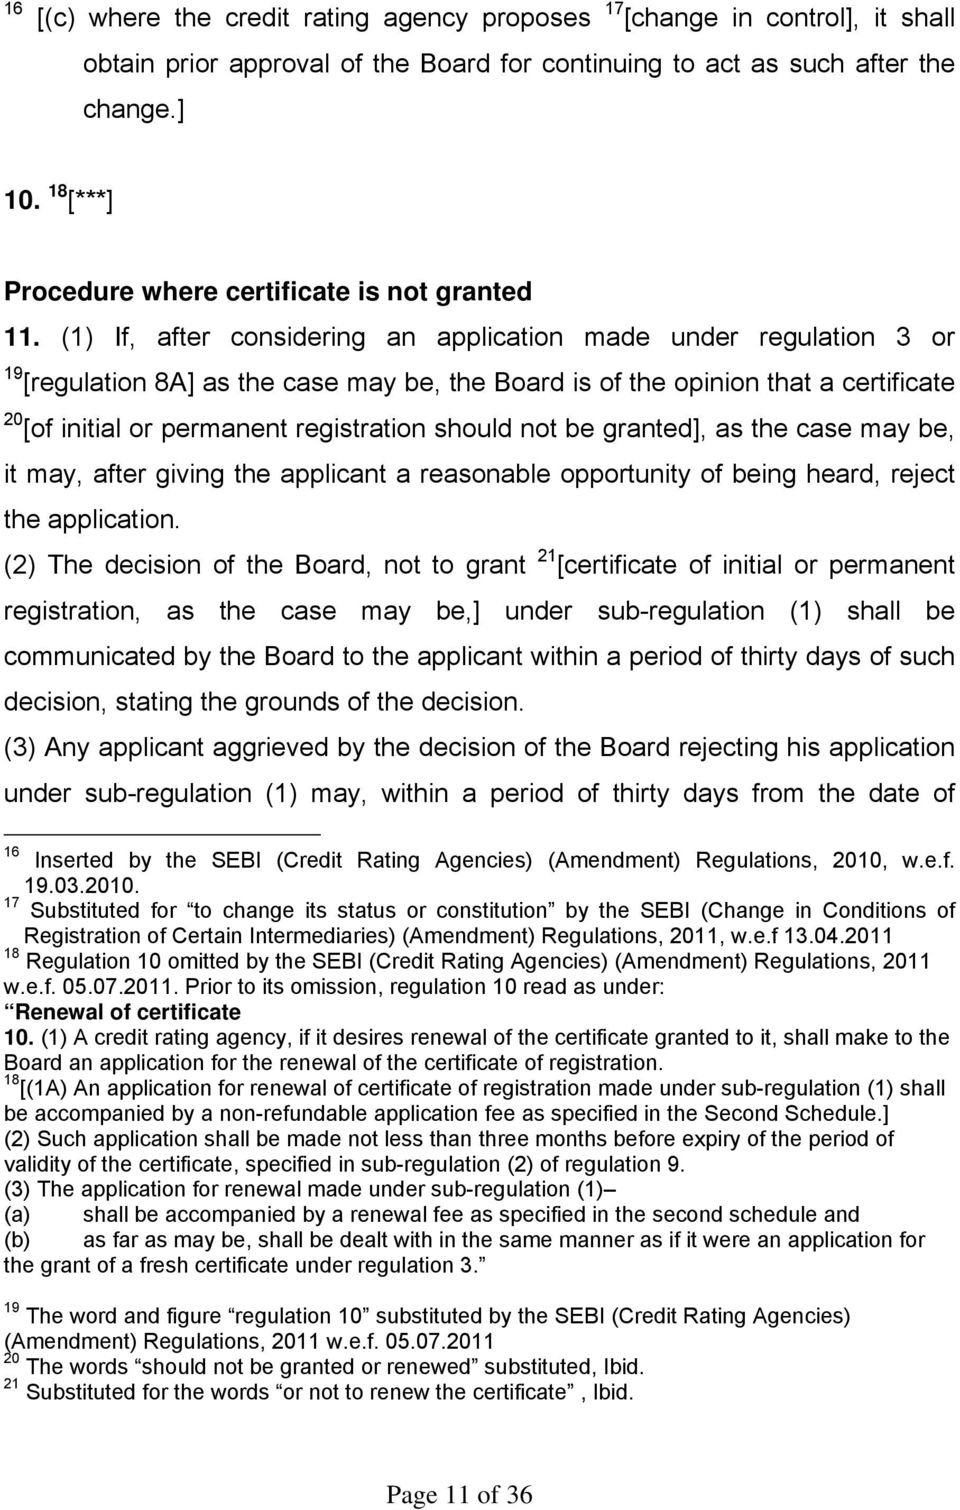 (1) If, after considering an application made under regulation 3 or 19 [regulation 8A] as the case may be, the Board is of the opinion that a certificate 20 [of initial or permanent registration